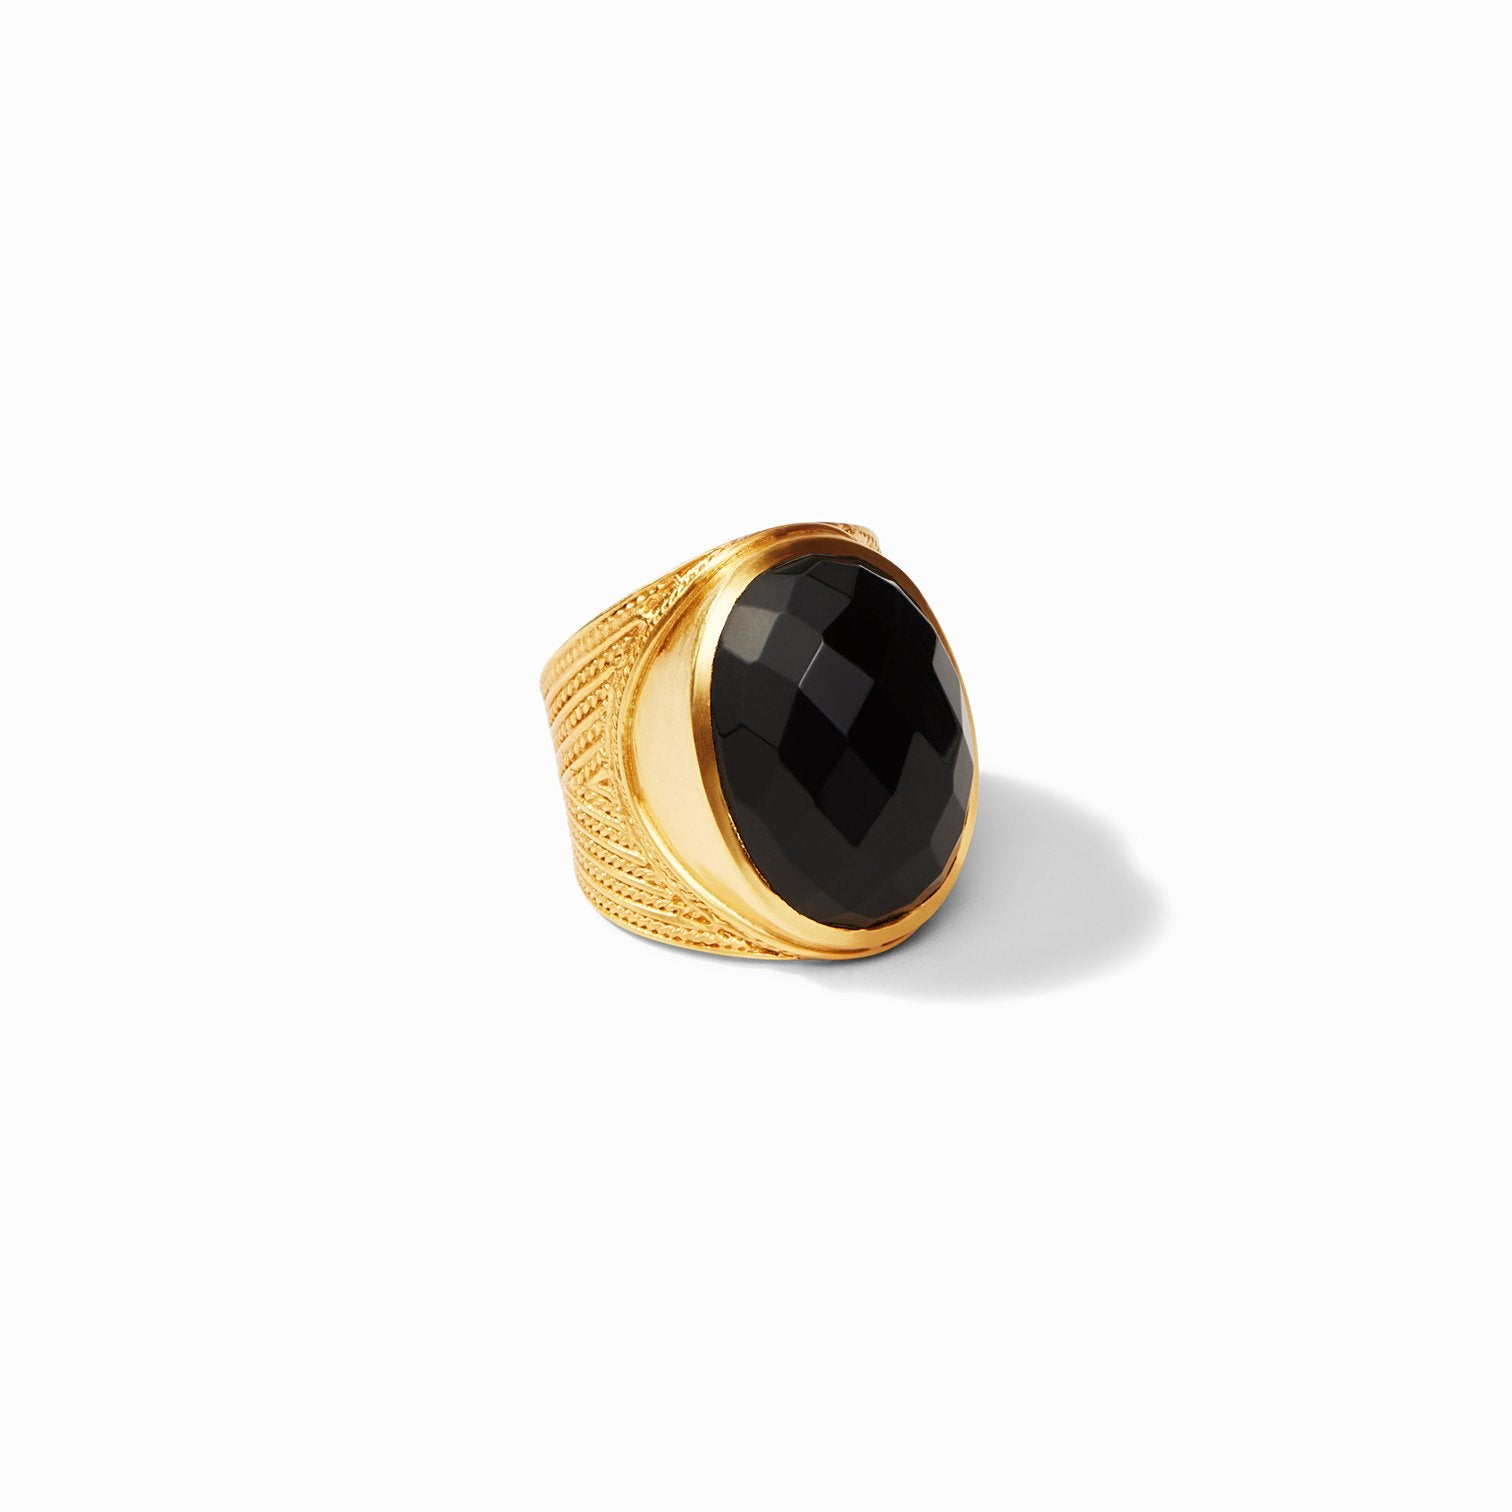 Verona Statement Ring - Julie Vos